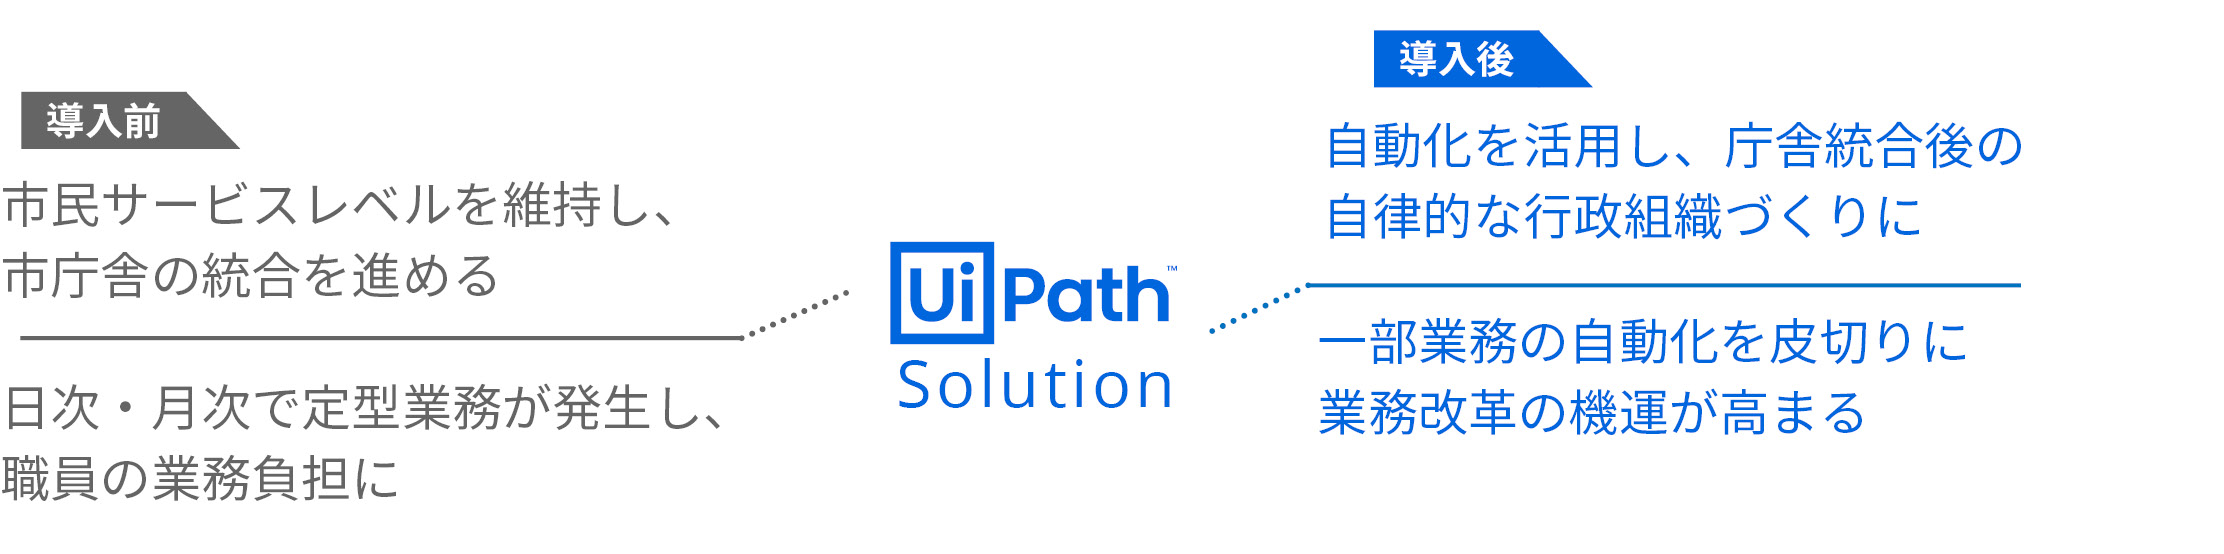 Nanto-shi_solution_overview